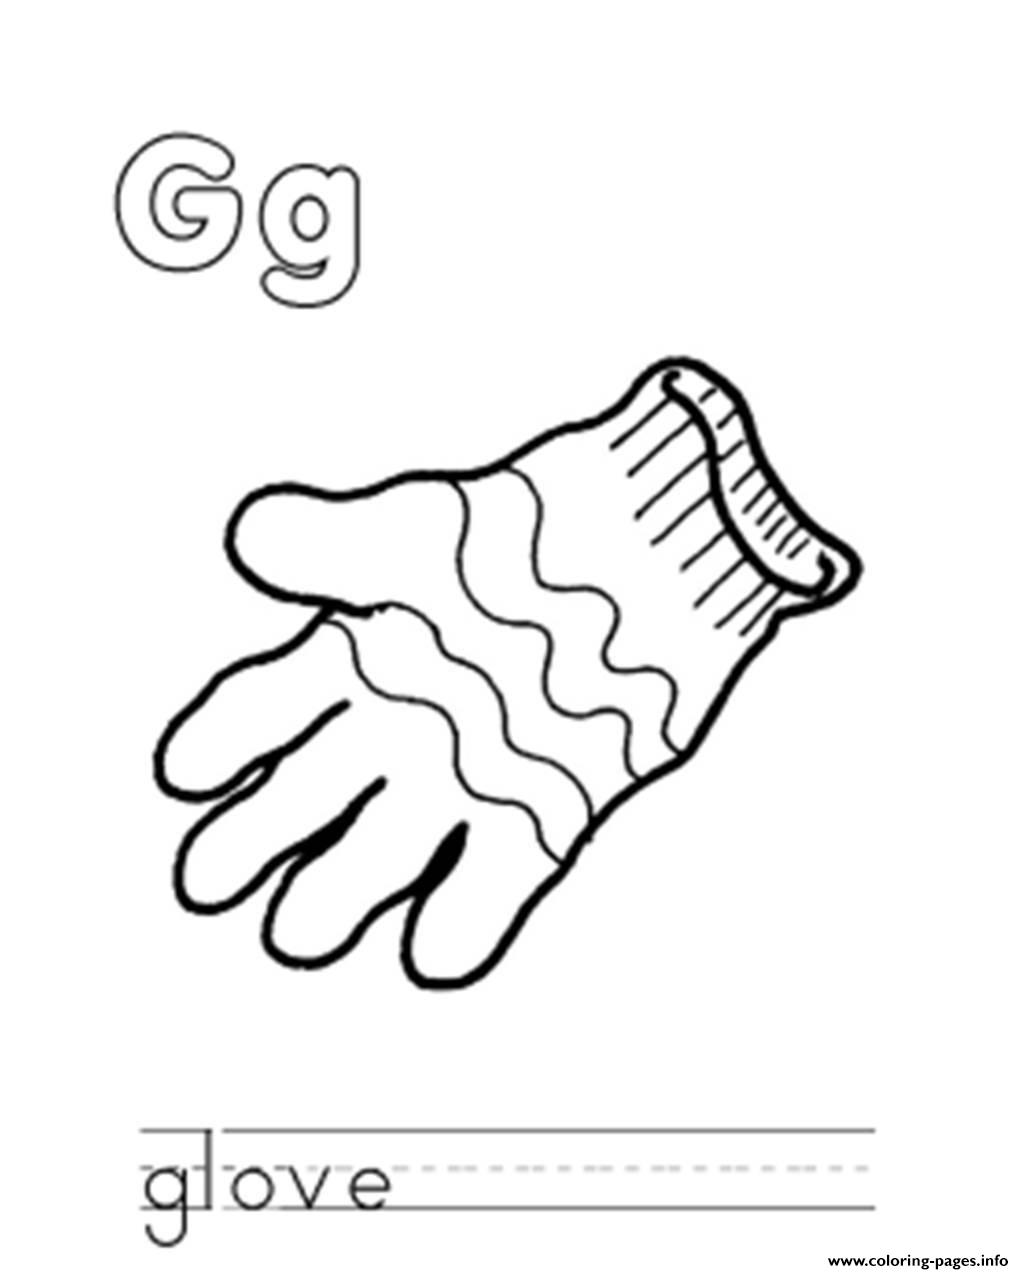 Glove s alphabet ge149 coloring pages printable for Coloring pages of mittens and gloves